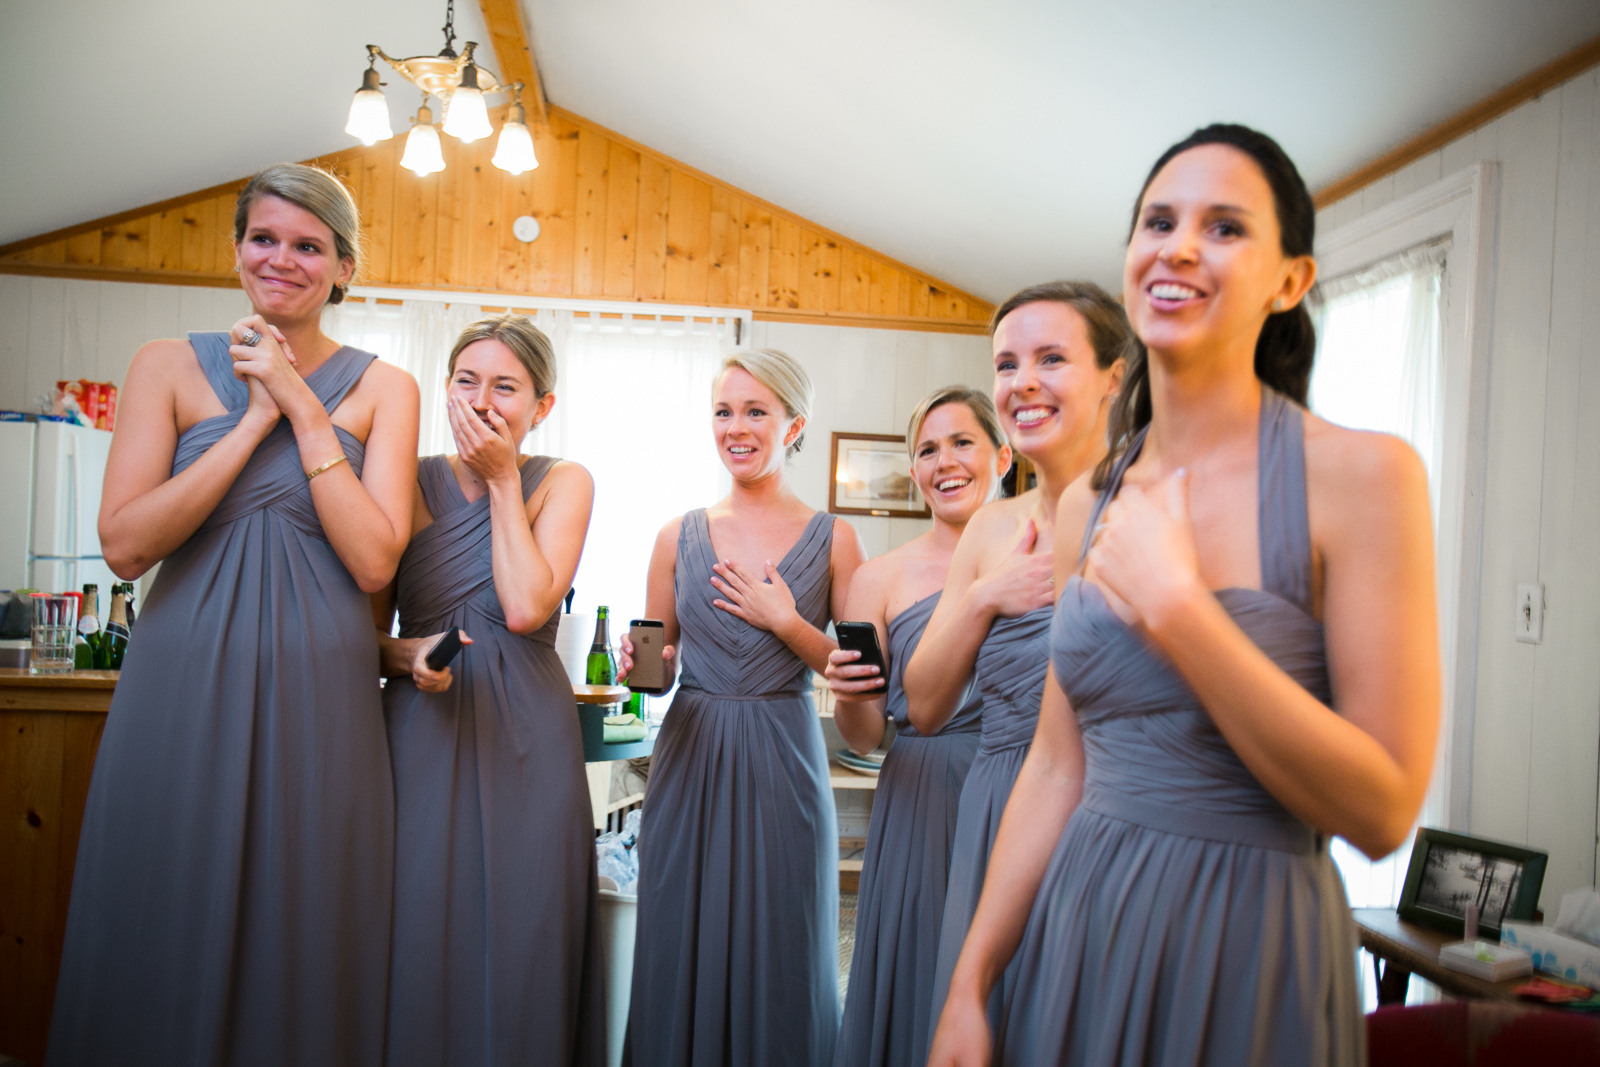 Bridesmaids captured reacting to their first look at the bride as she gets ready to walk down the aisle.